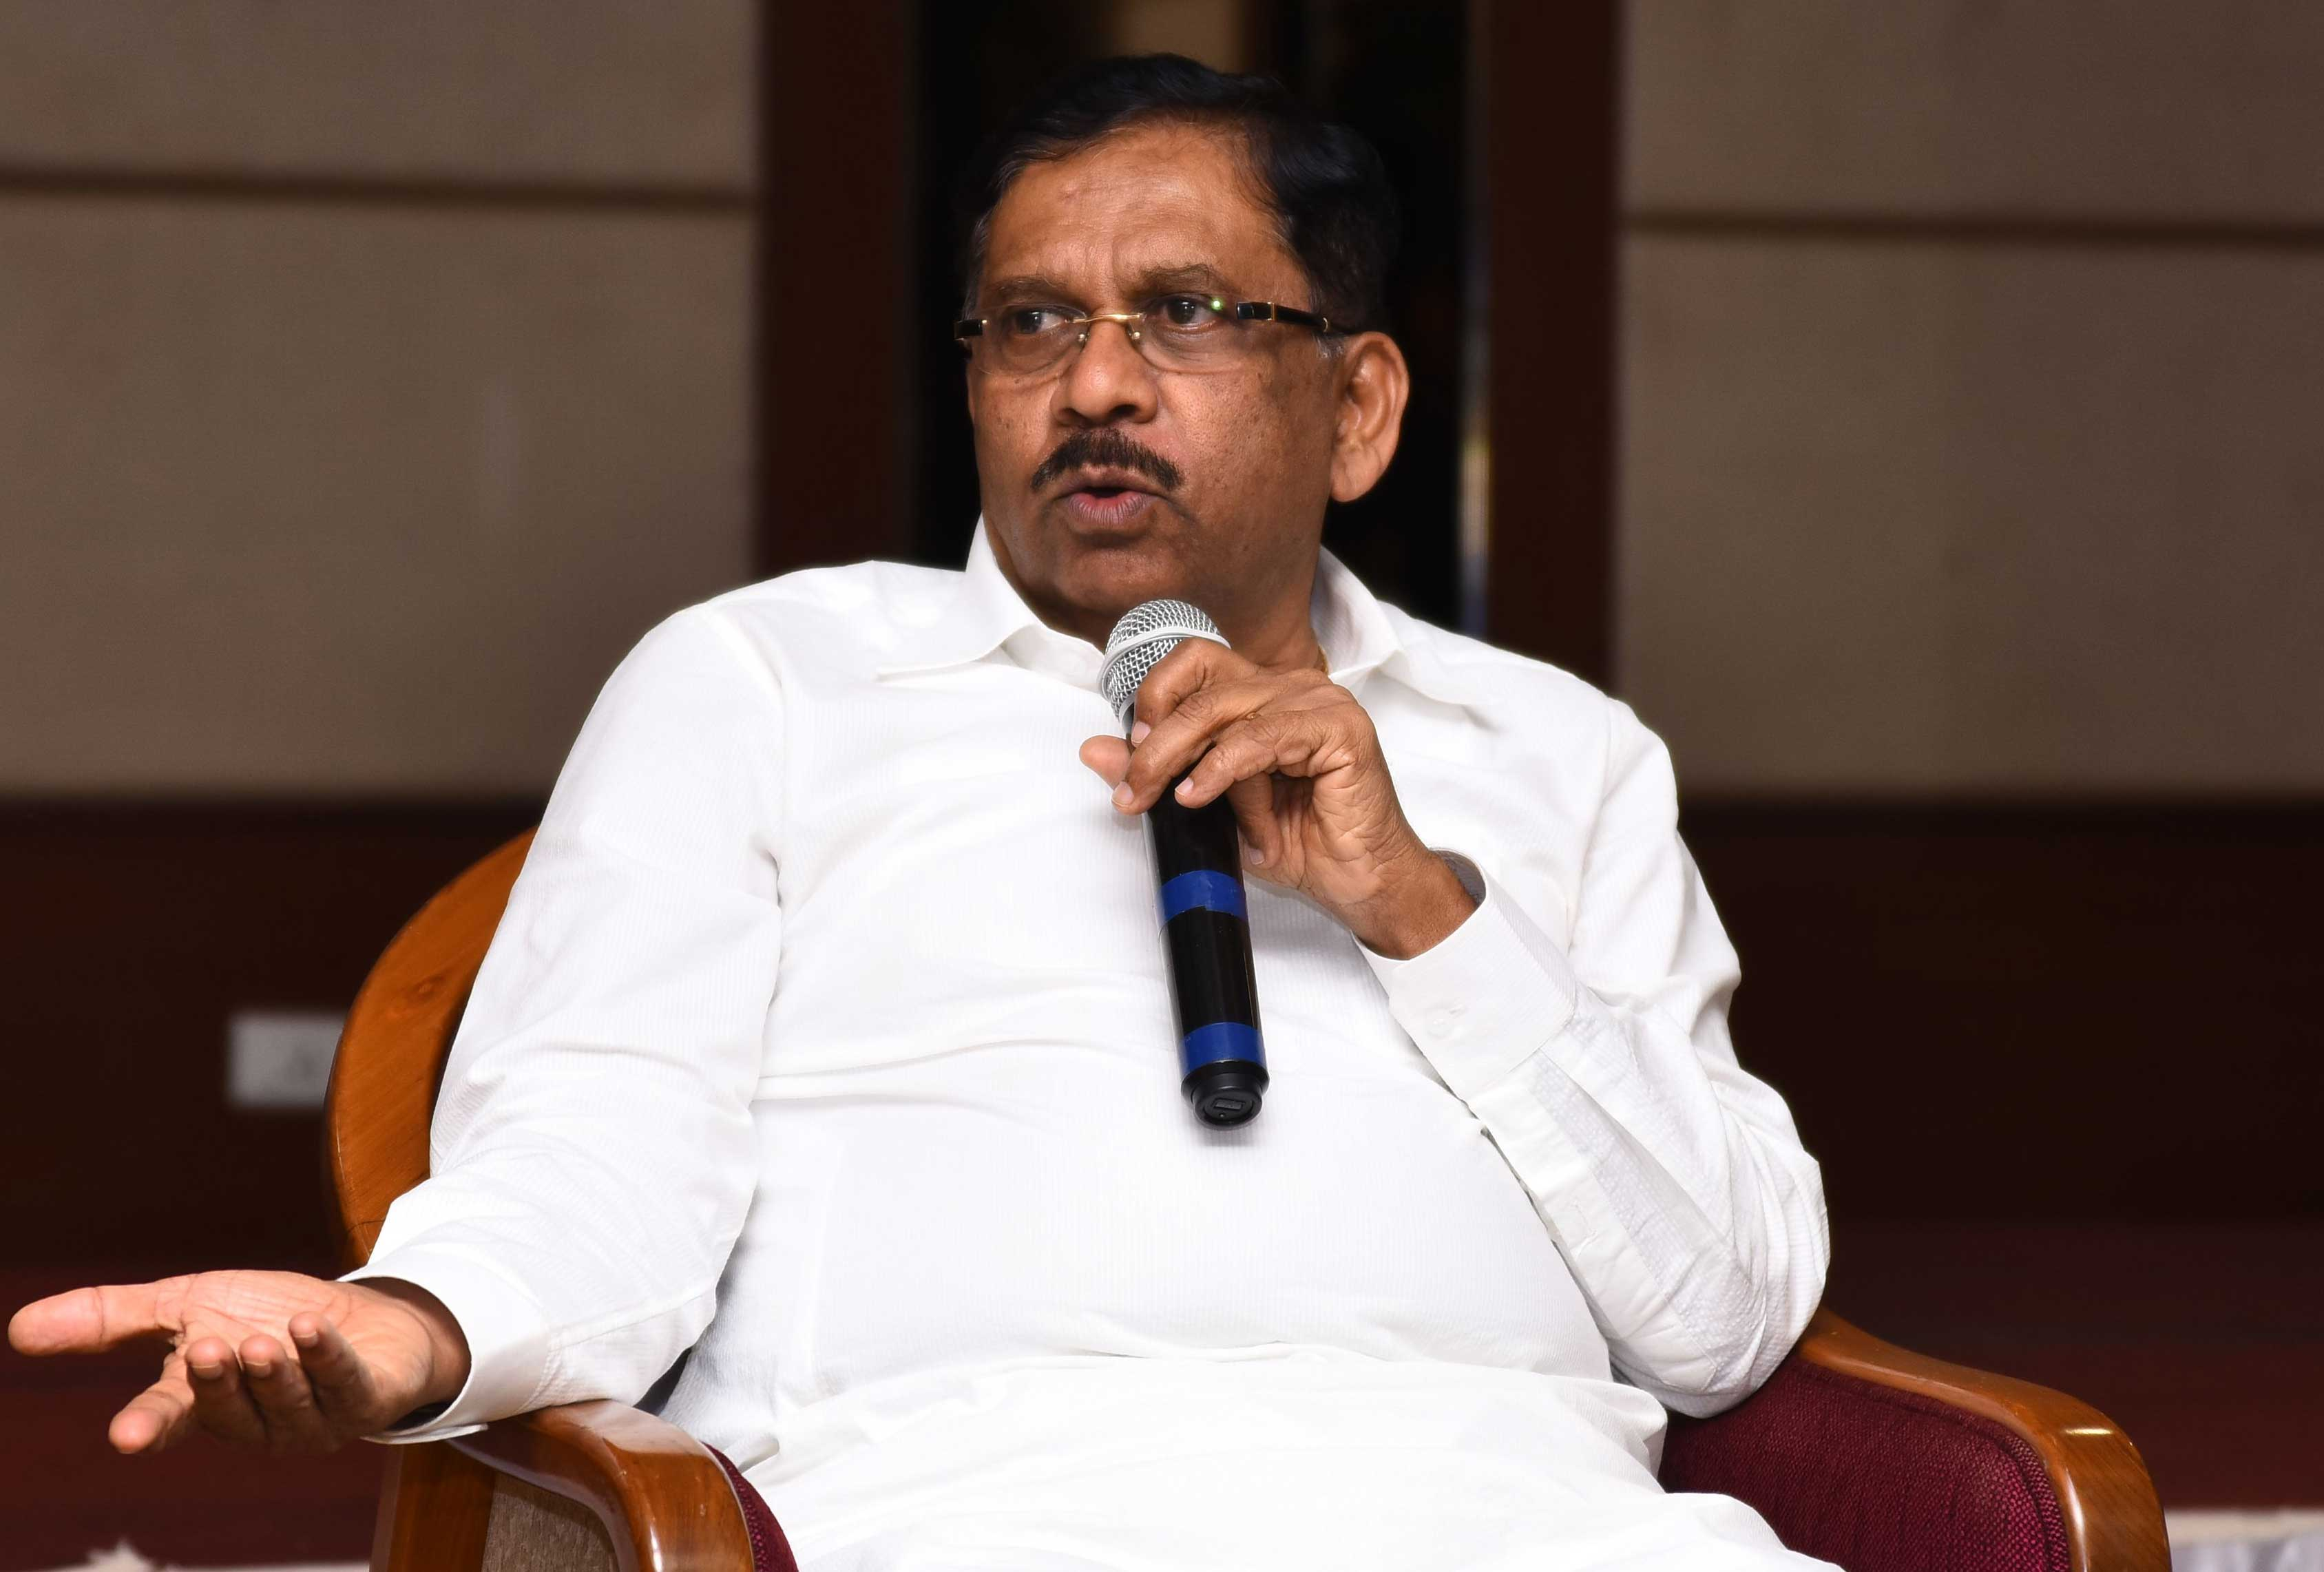 Parameshwara, who is touring France to study waste-to-energy management, inaugurated a state-of-the-art waste sorting centre of 500 tonnes per day capacity at Le Puy-en-Velay town in southern France on Sunday.(DH File Photo)